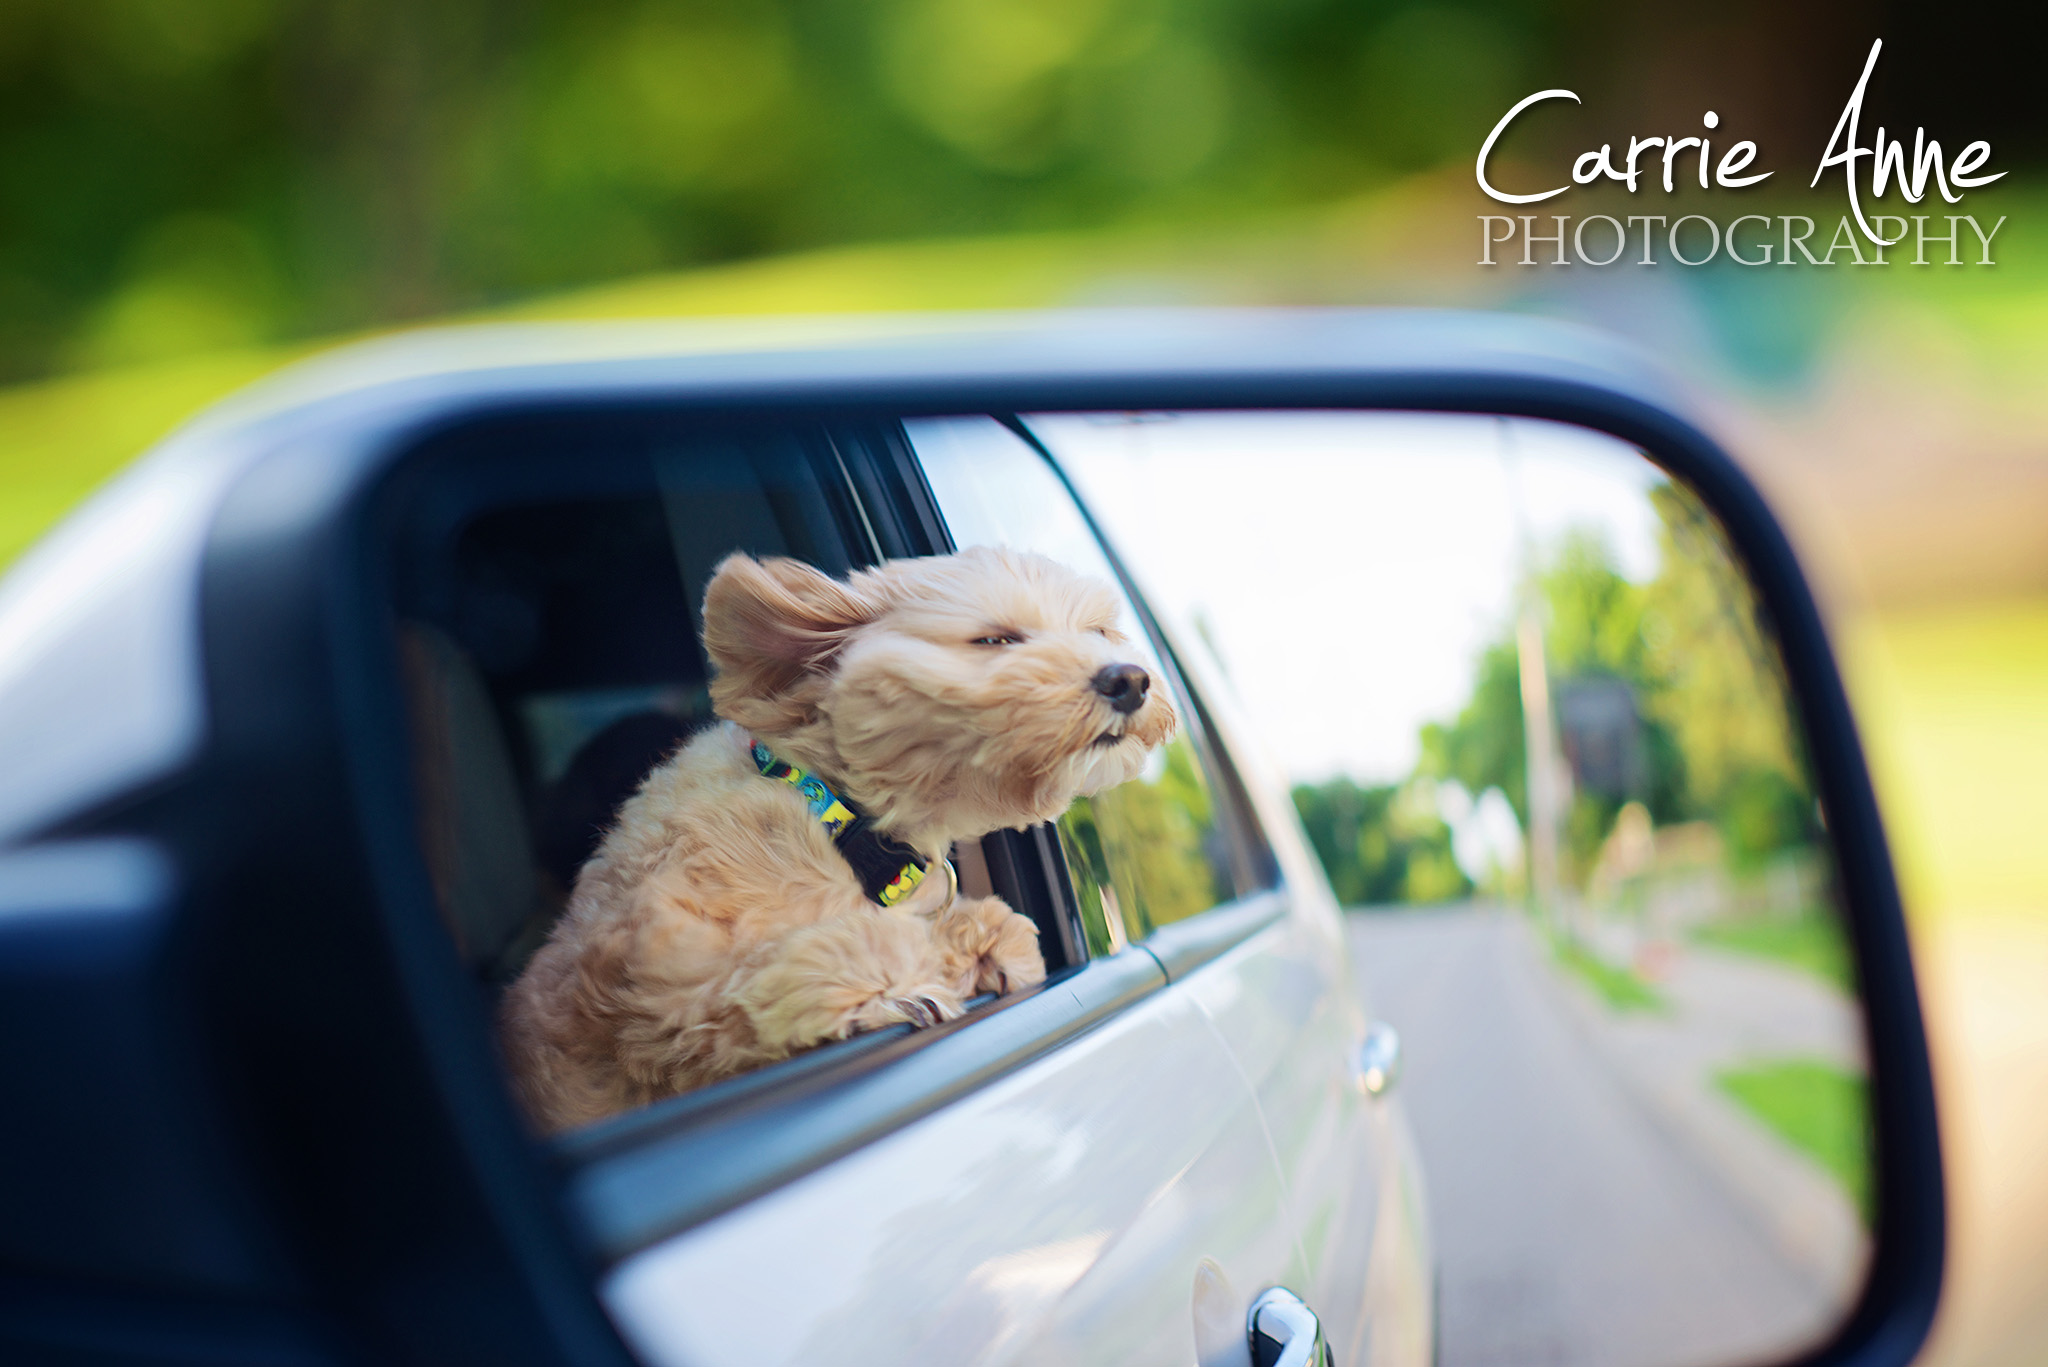 dog-in-mirror-carrie-anne-photography